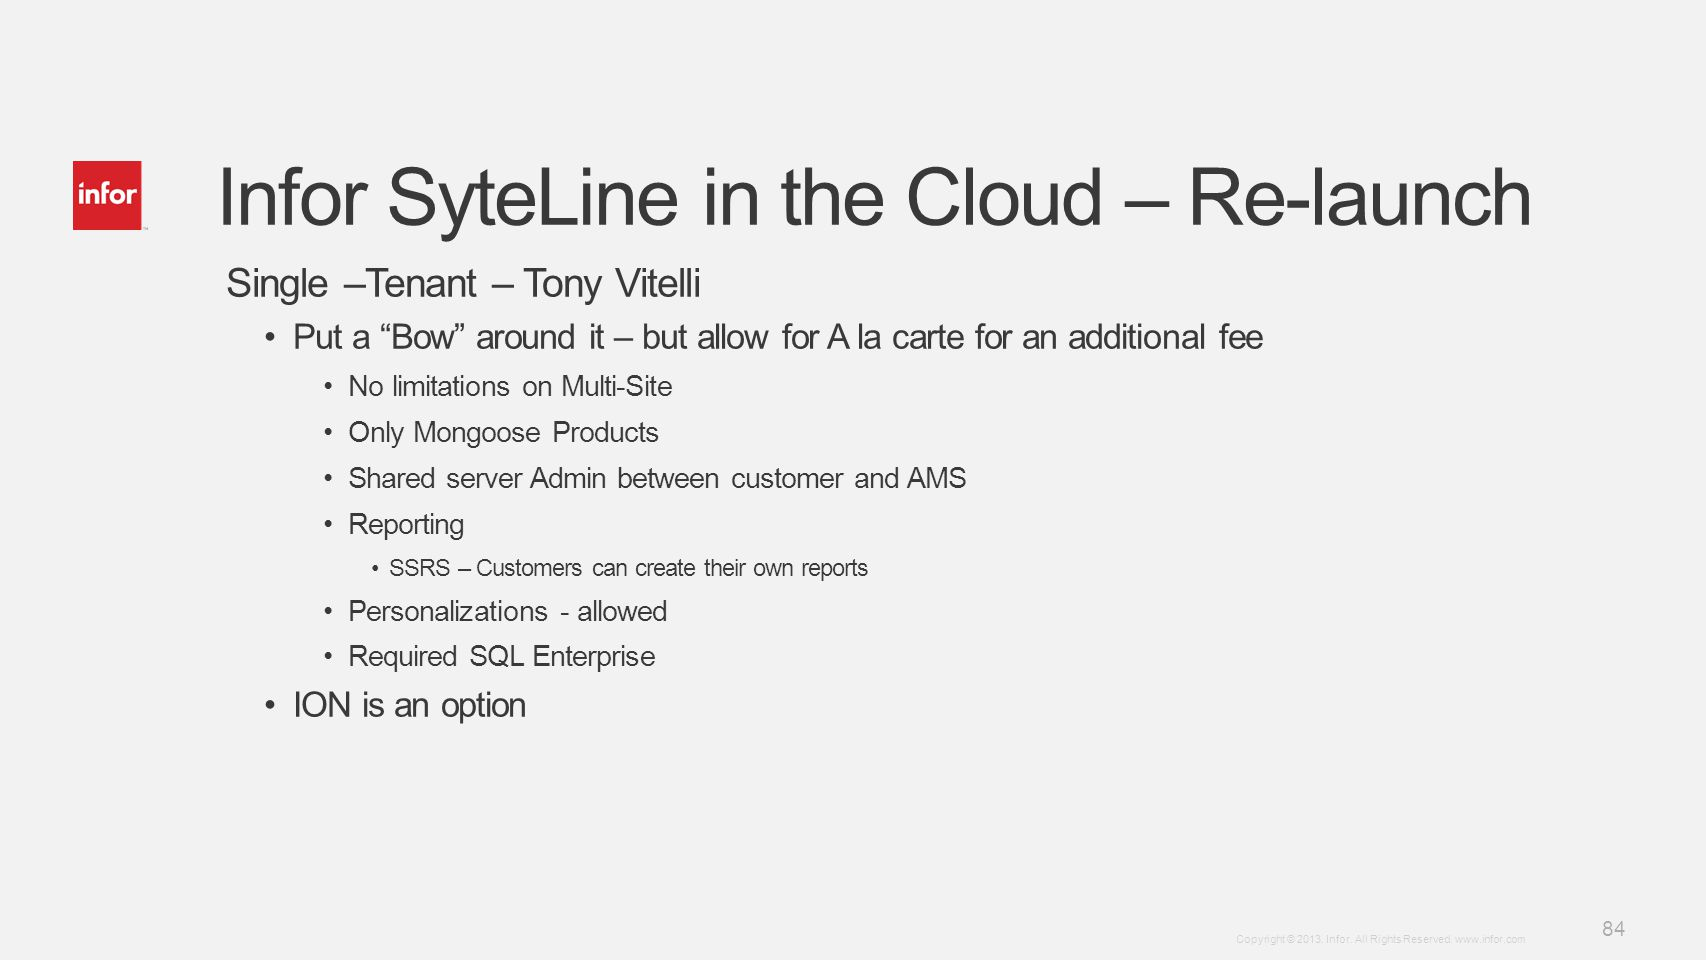 Infor SyteLine in the Cloud – Re-launch